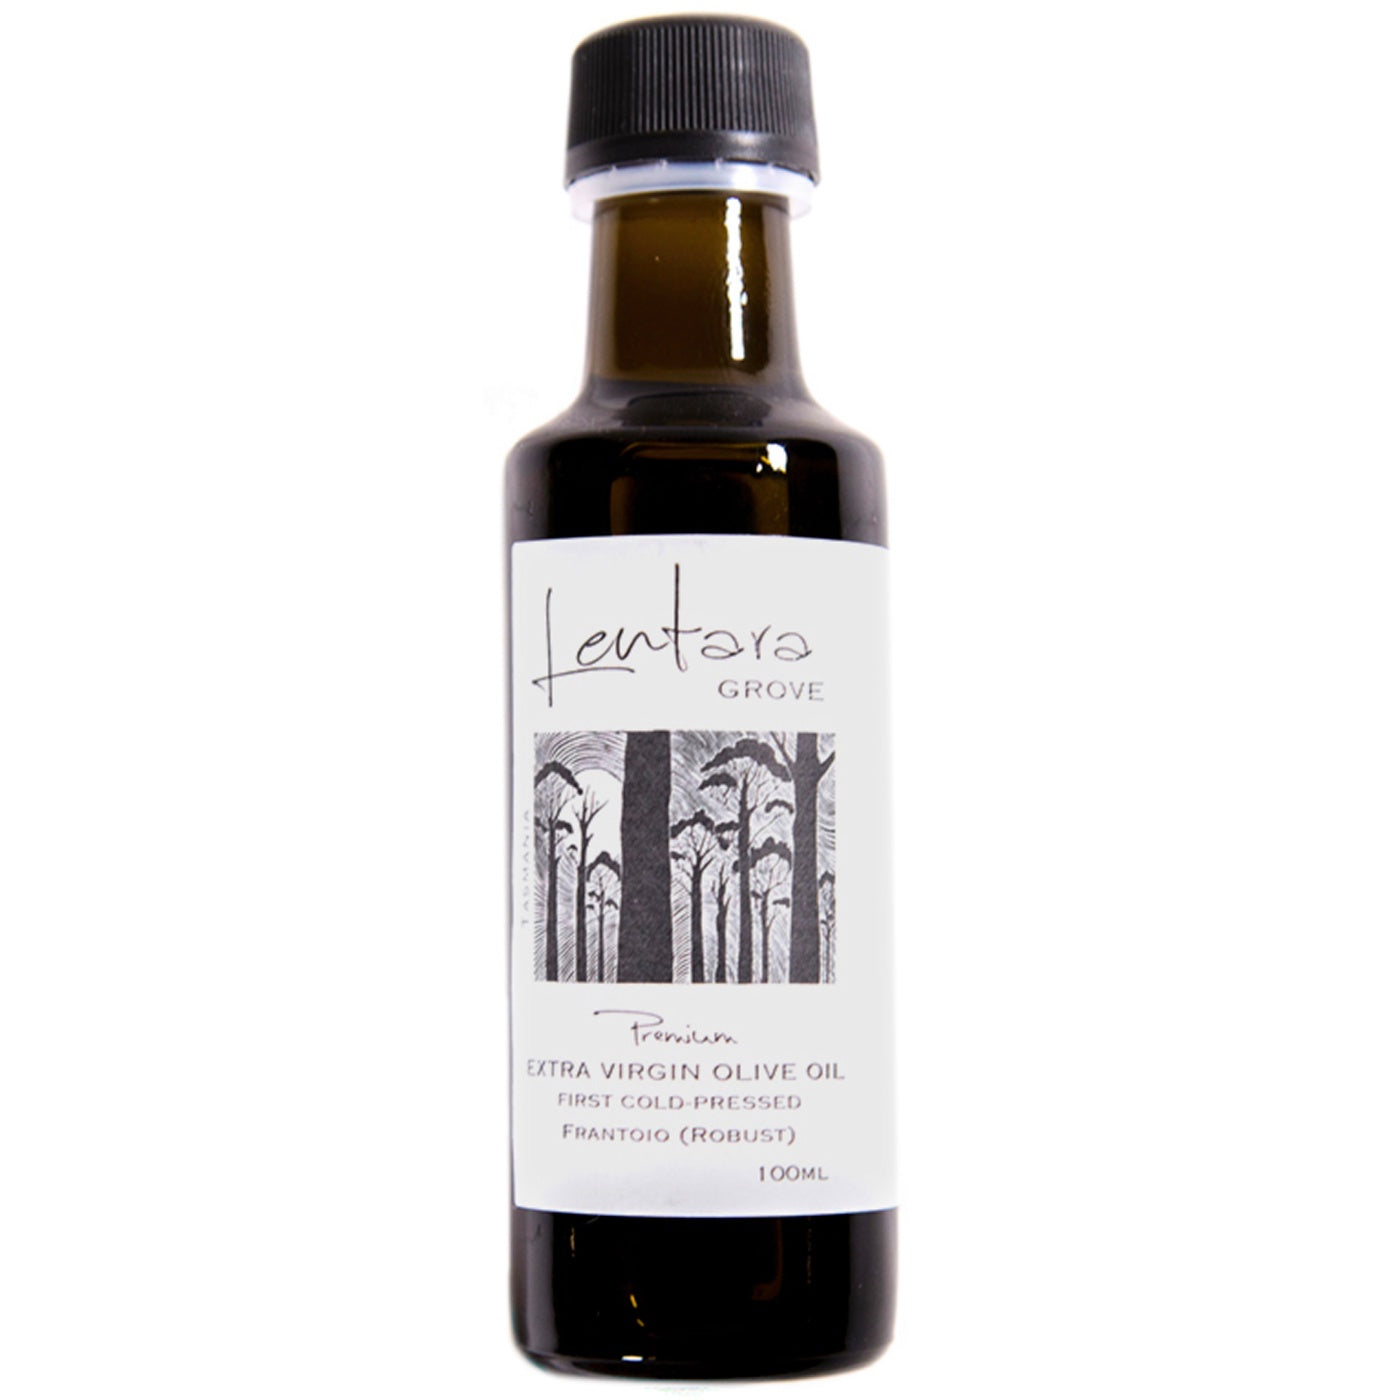 Lentara Grove – Extra Virgin Olive Oil - Frantoio (Robust)